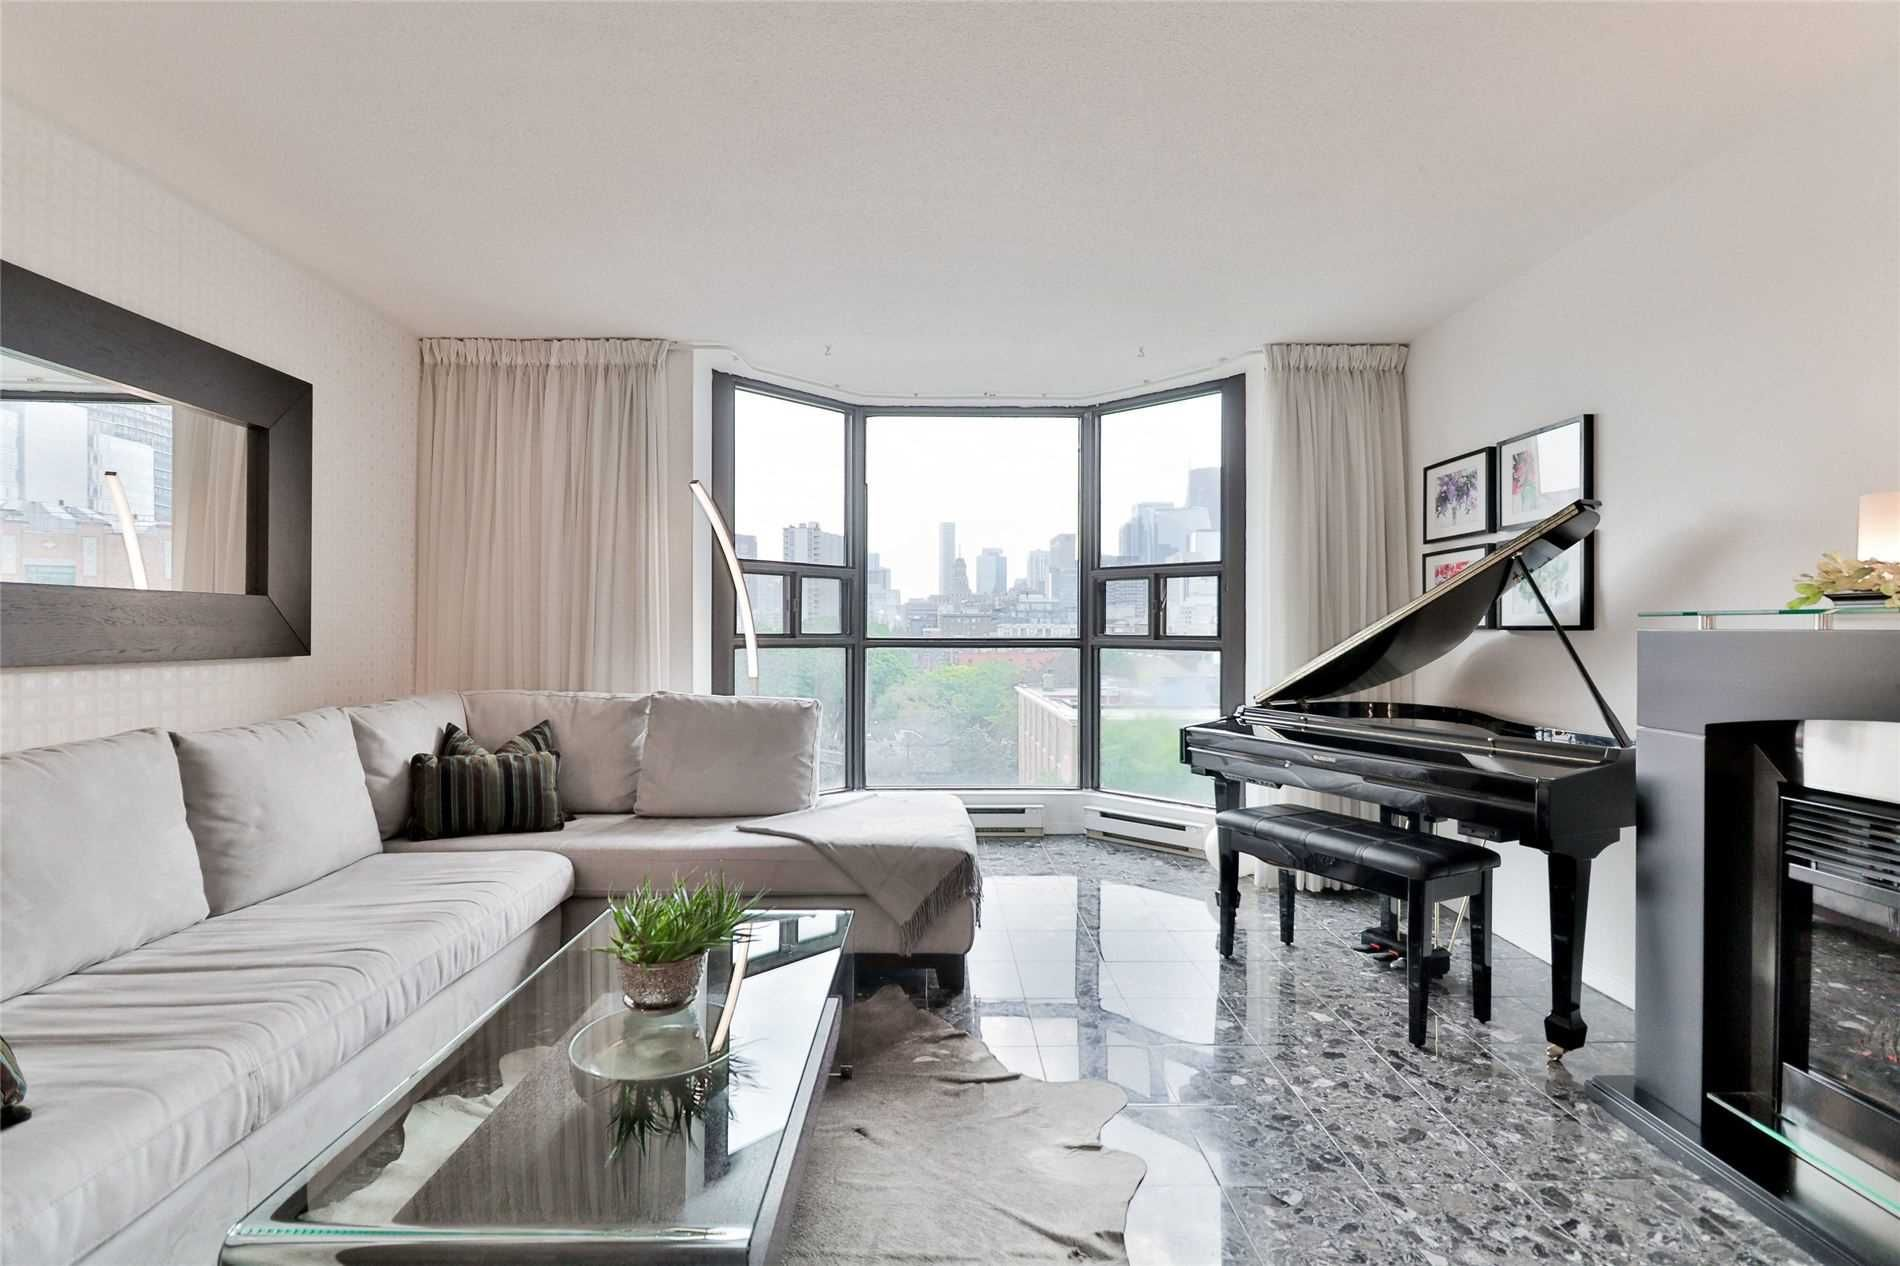 188 Spadina Ave, unit 603 for sale in Chinatown - image #1